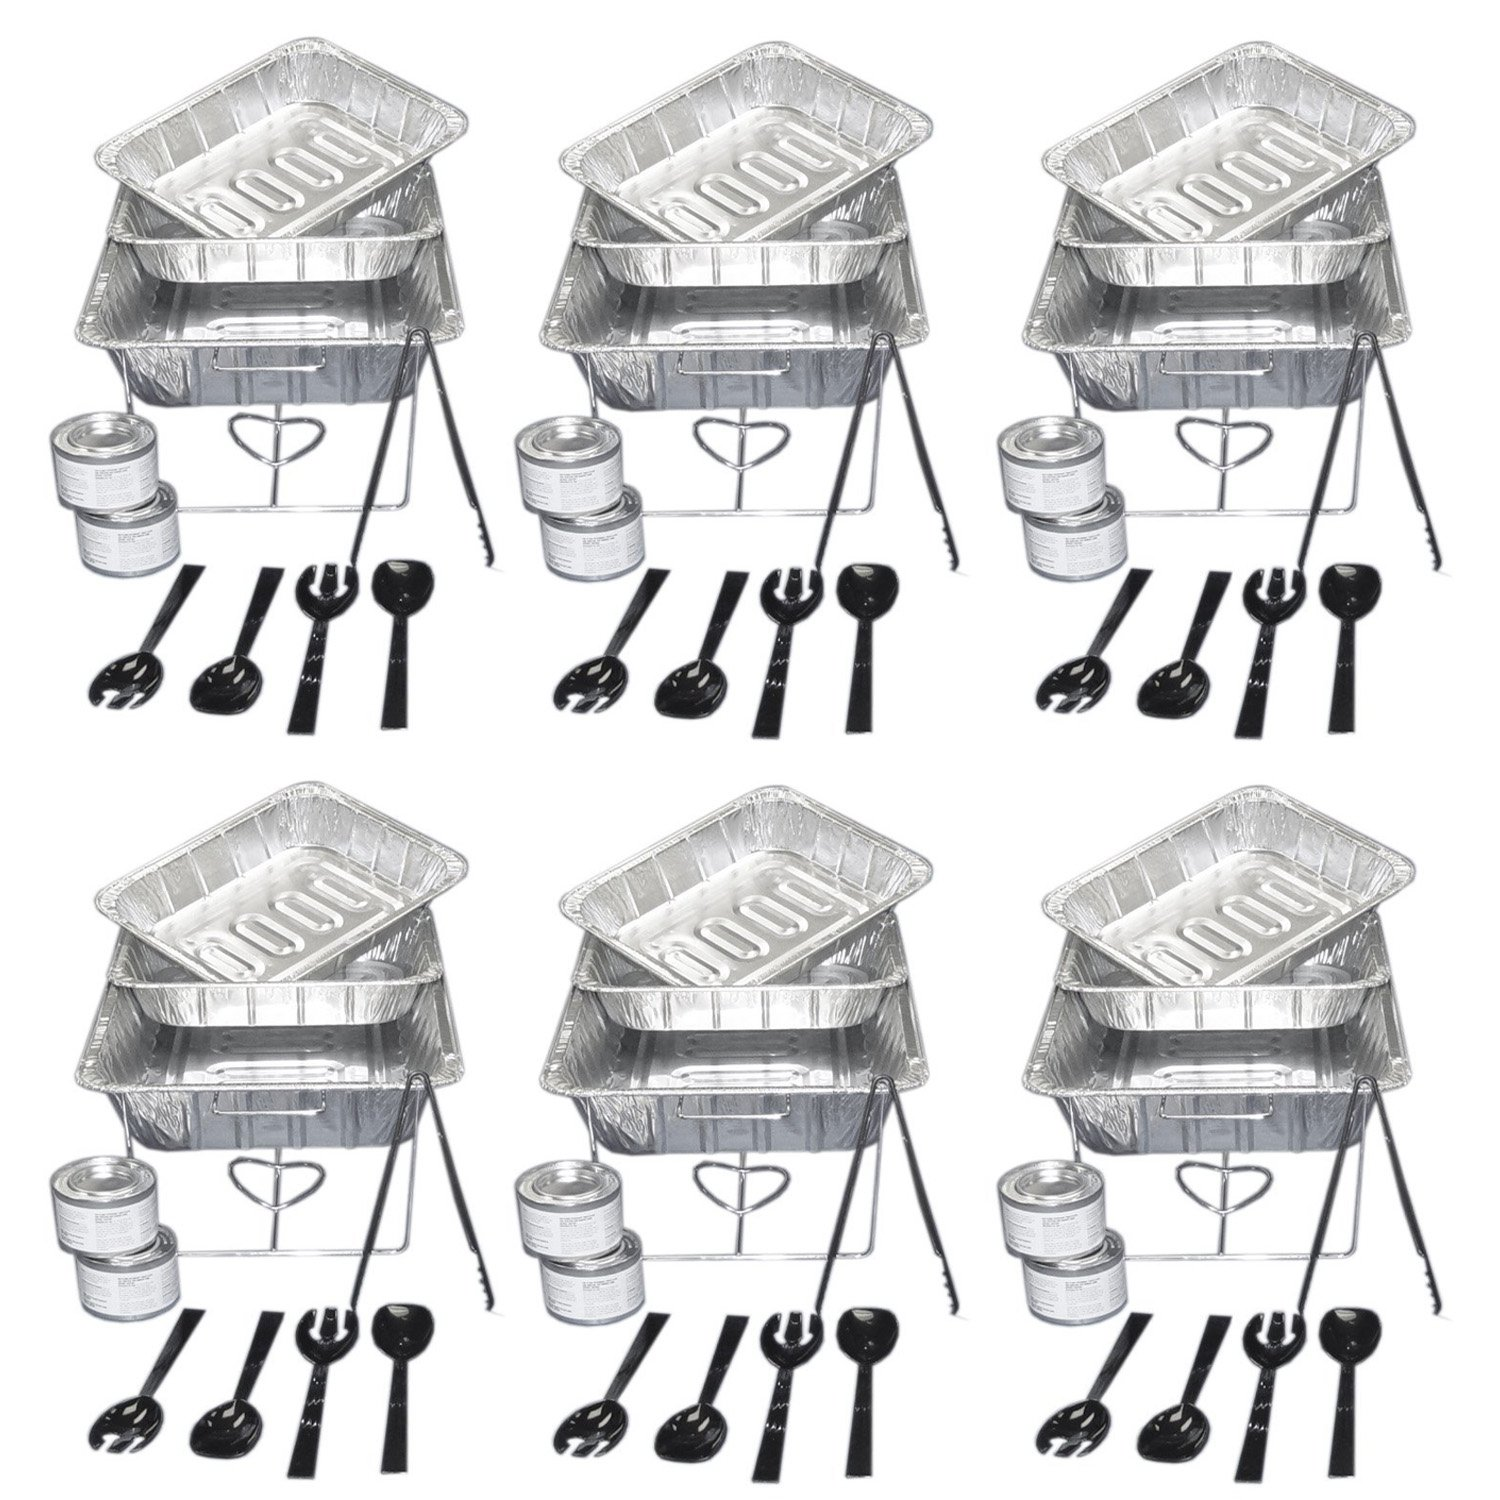 Party Essentials UPK-33, 33 piece Party Serving Kit Includes Chafing Kits and Serving Utensils (2 Pack (6 Sets))